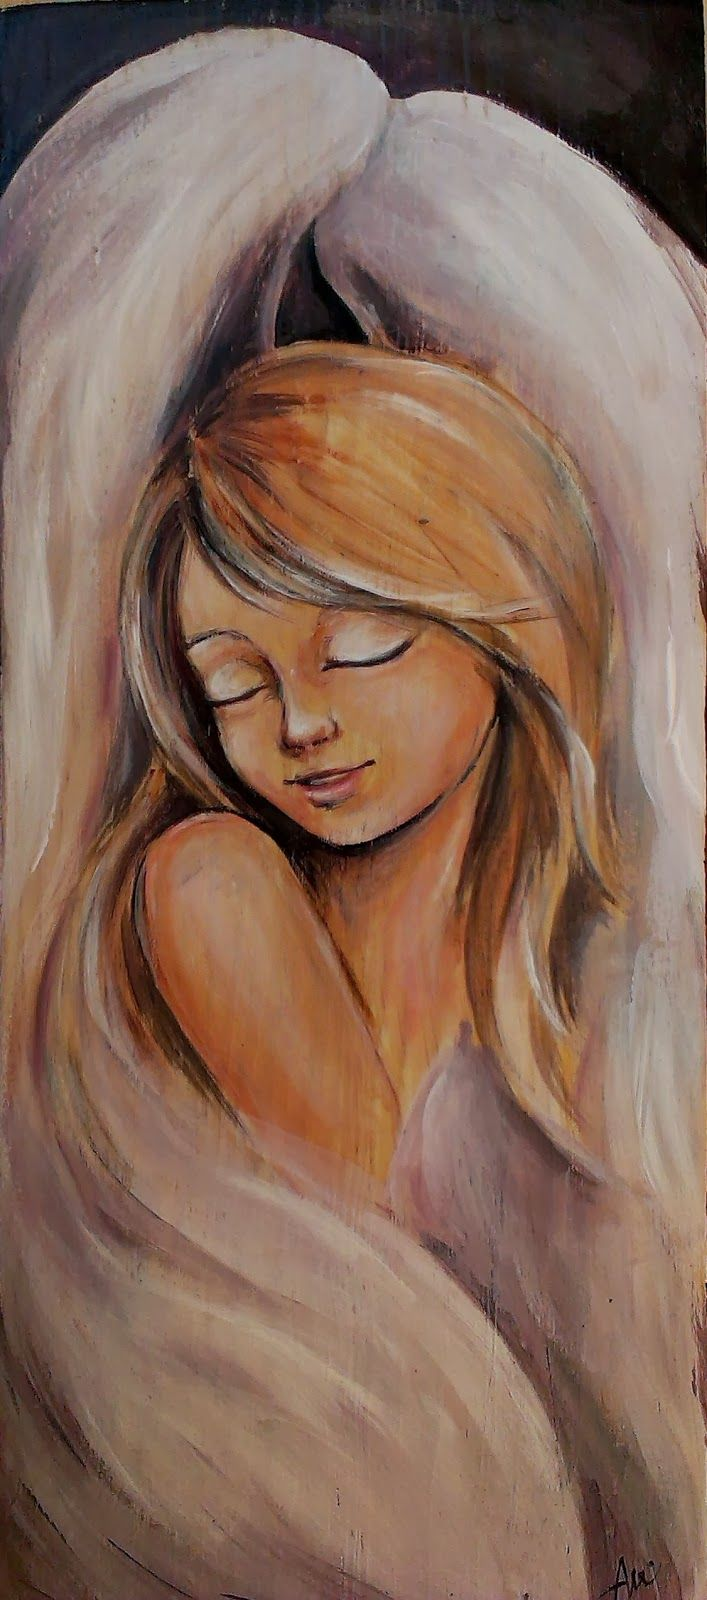 Anielska delikatność  angel acrylic painting on wood